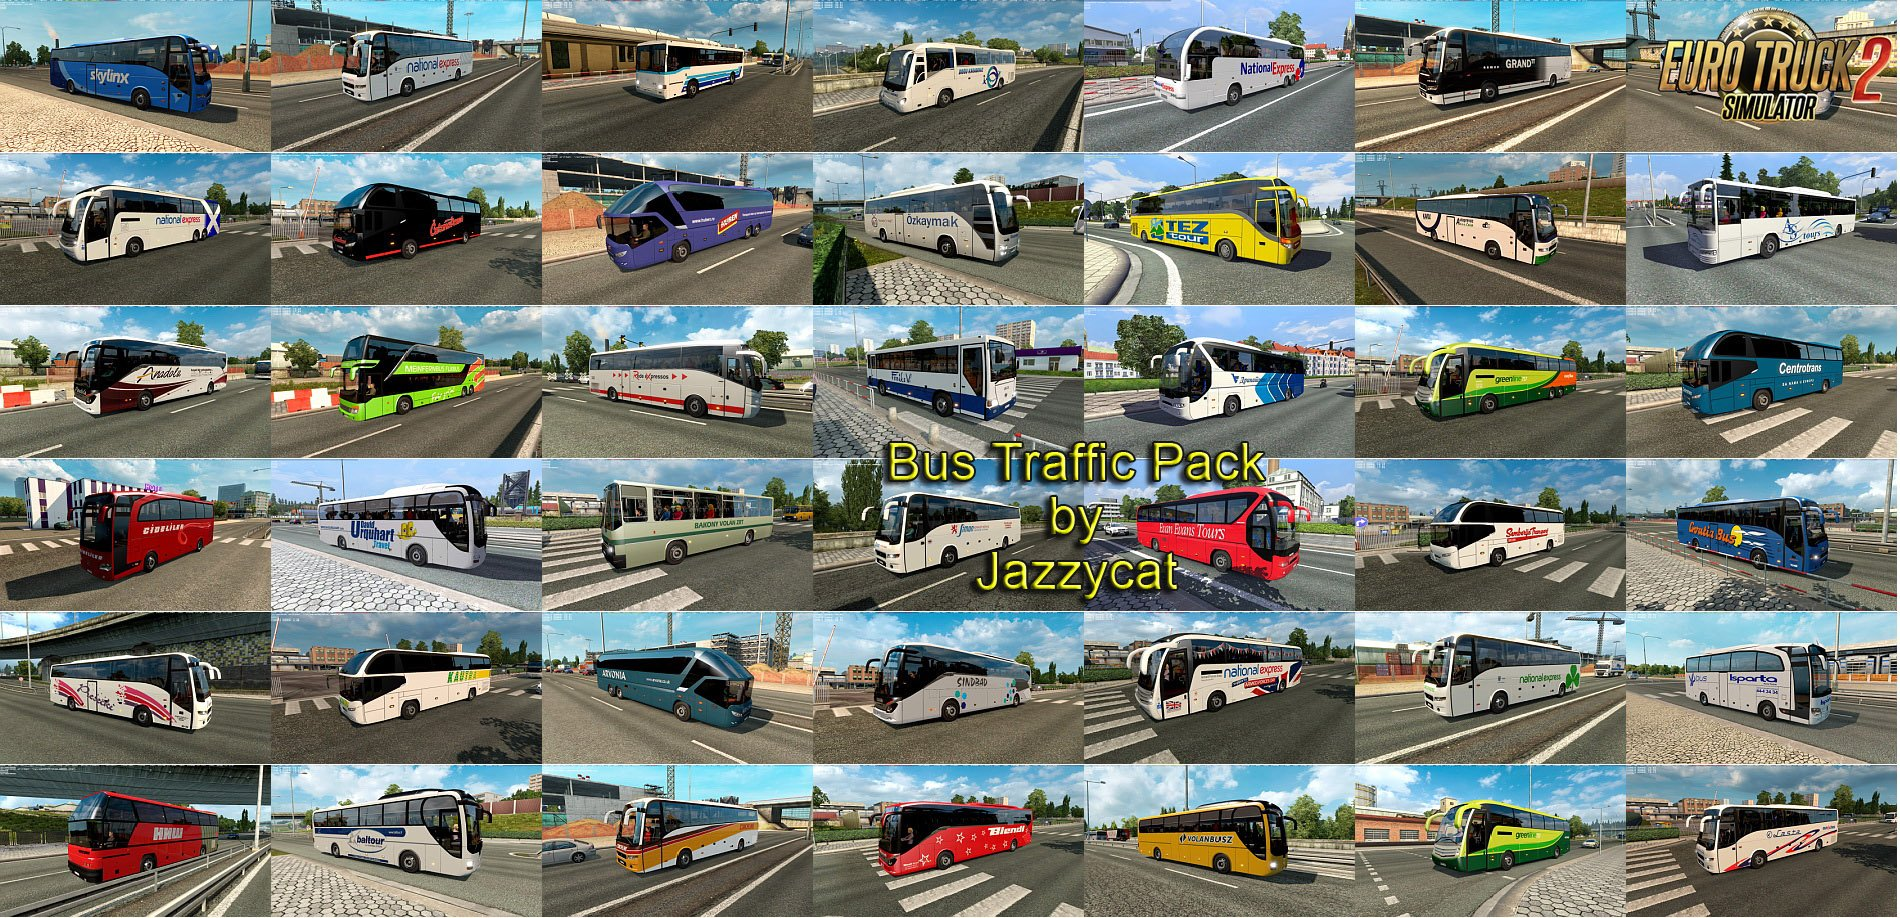 Bus Traffic Pack v3.0 by Jazzycat